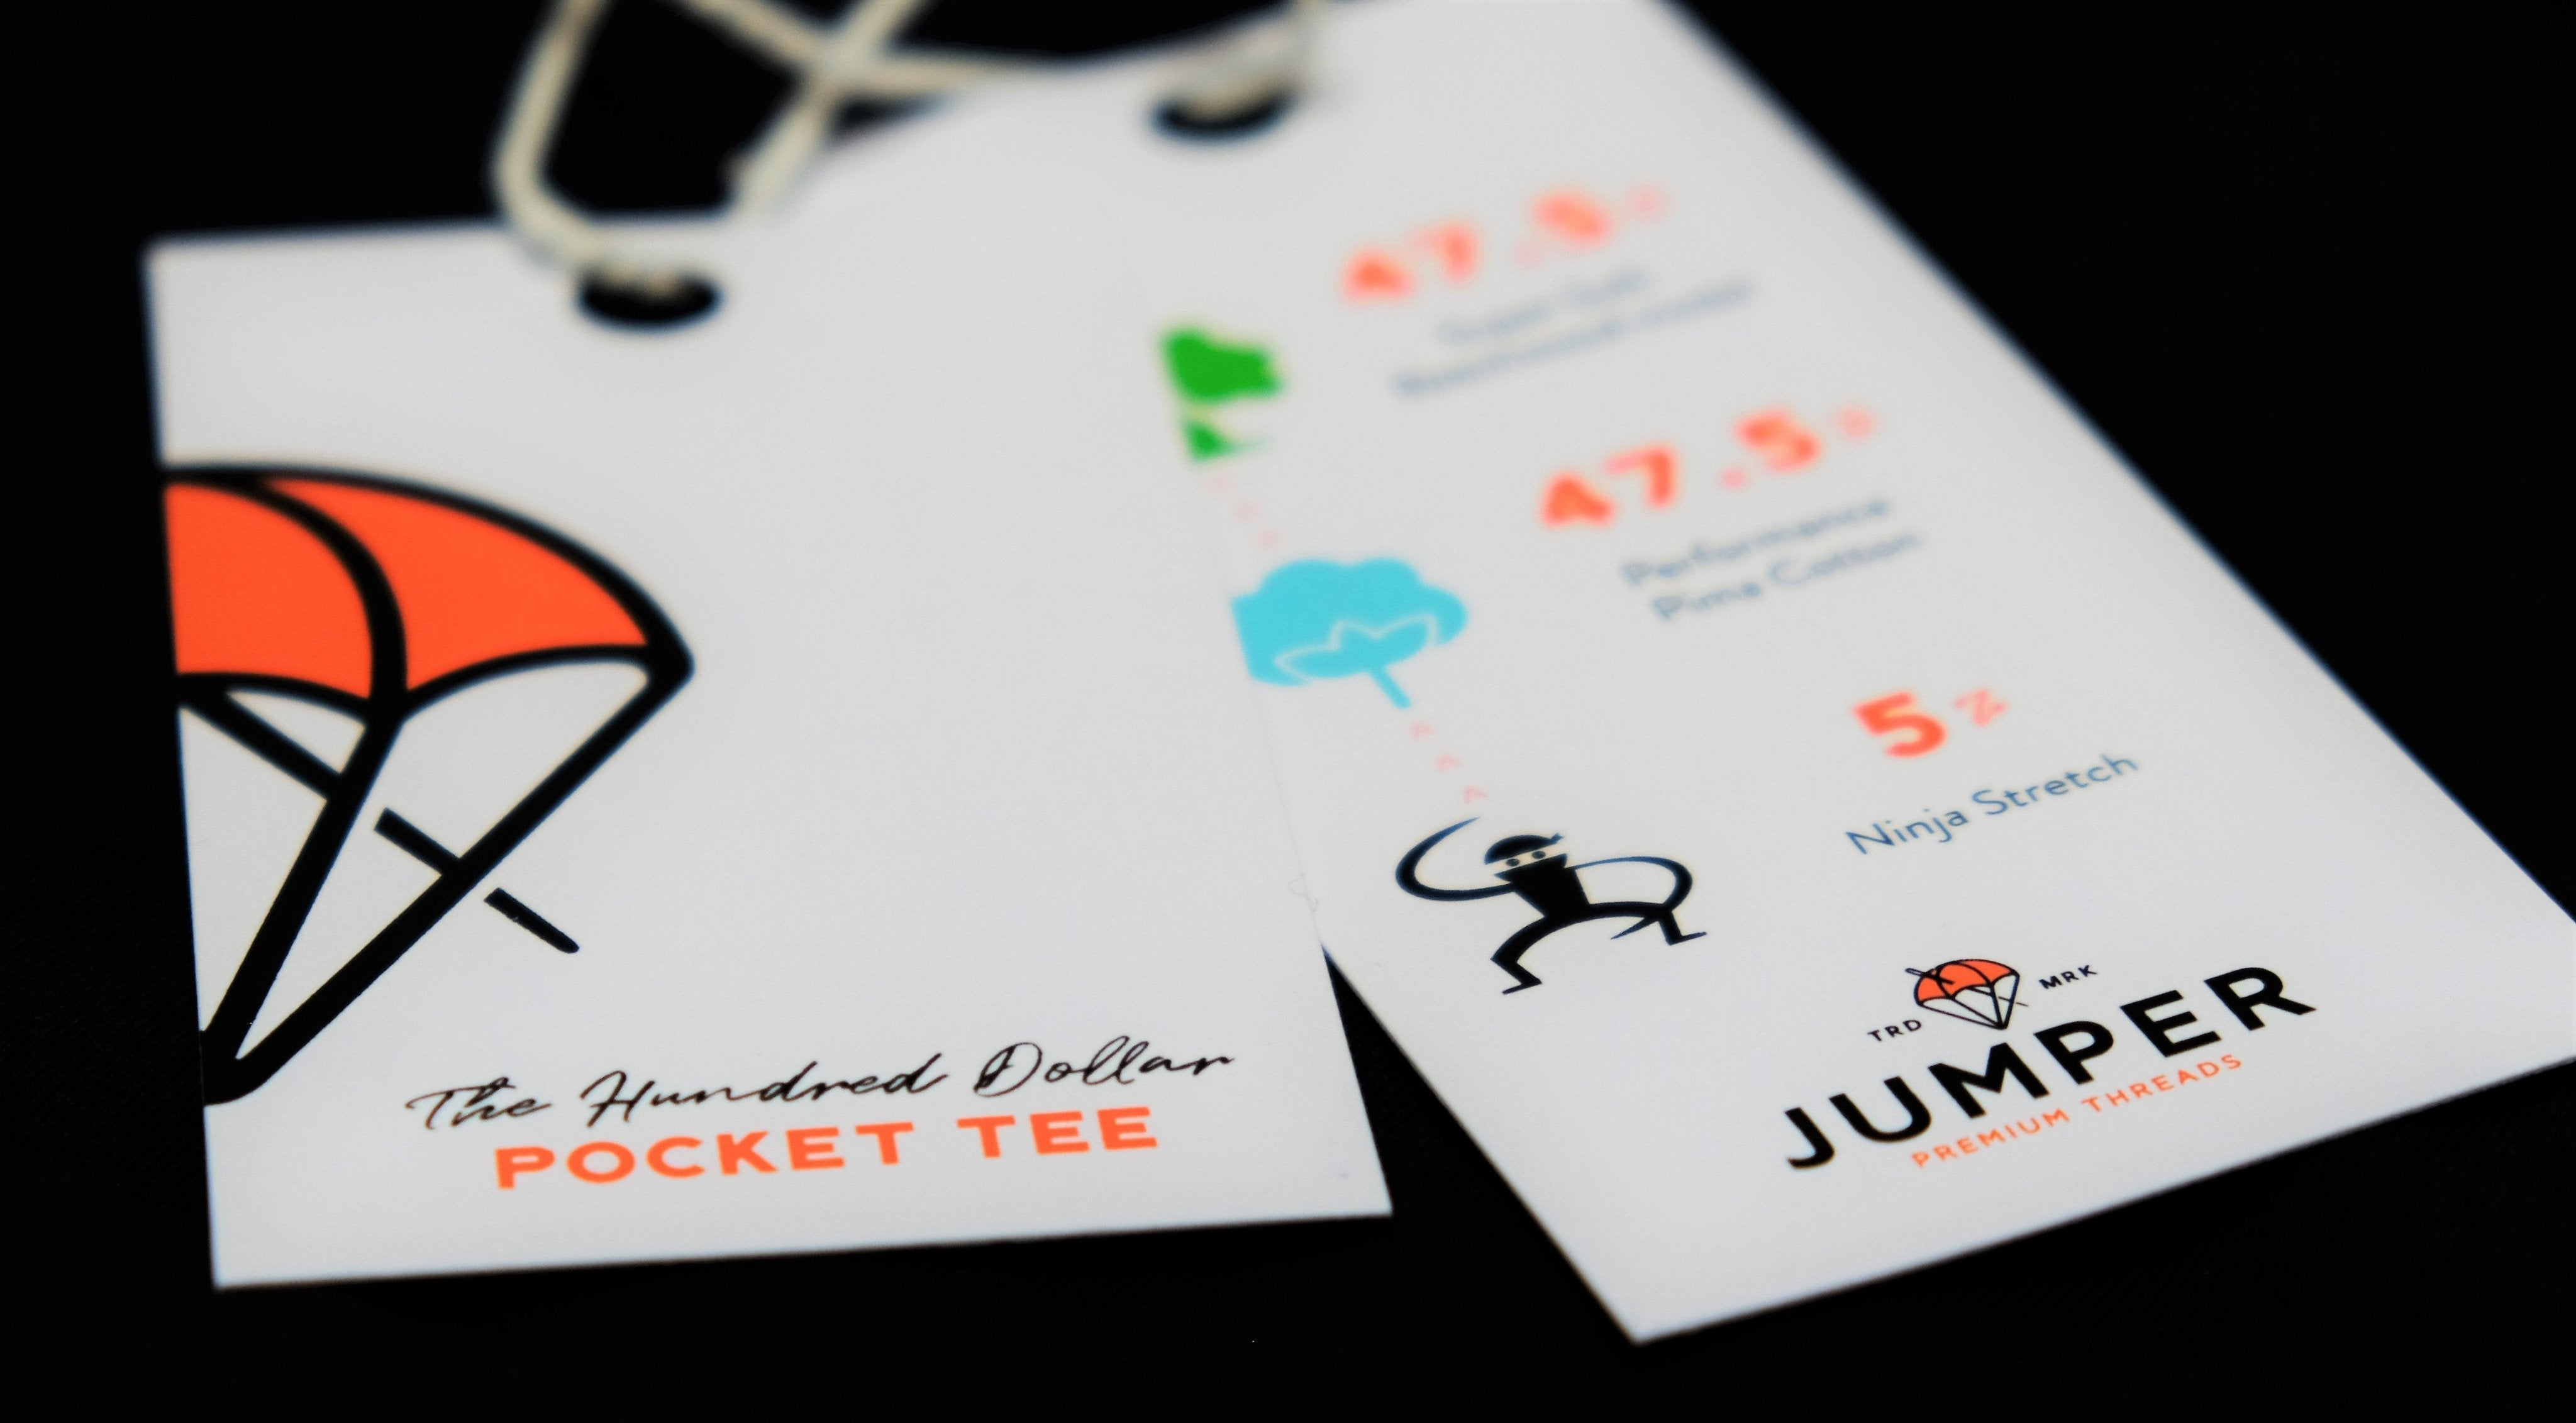 Shirts - The Hundred Dollar Pocket Tee